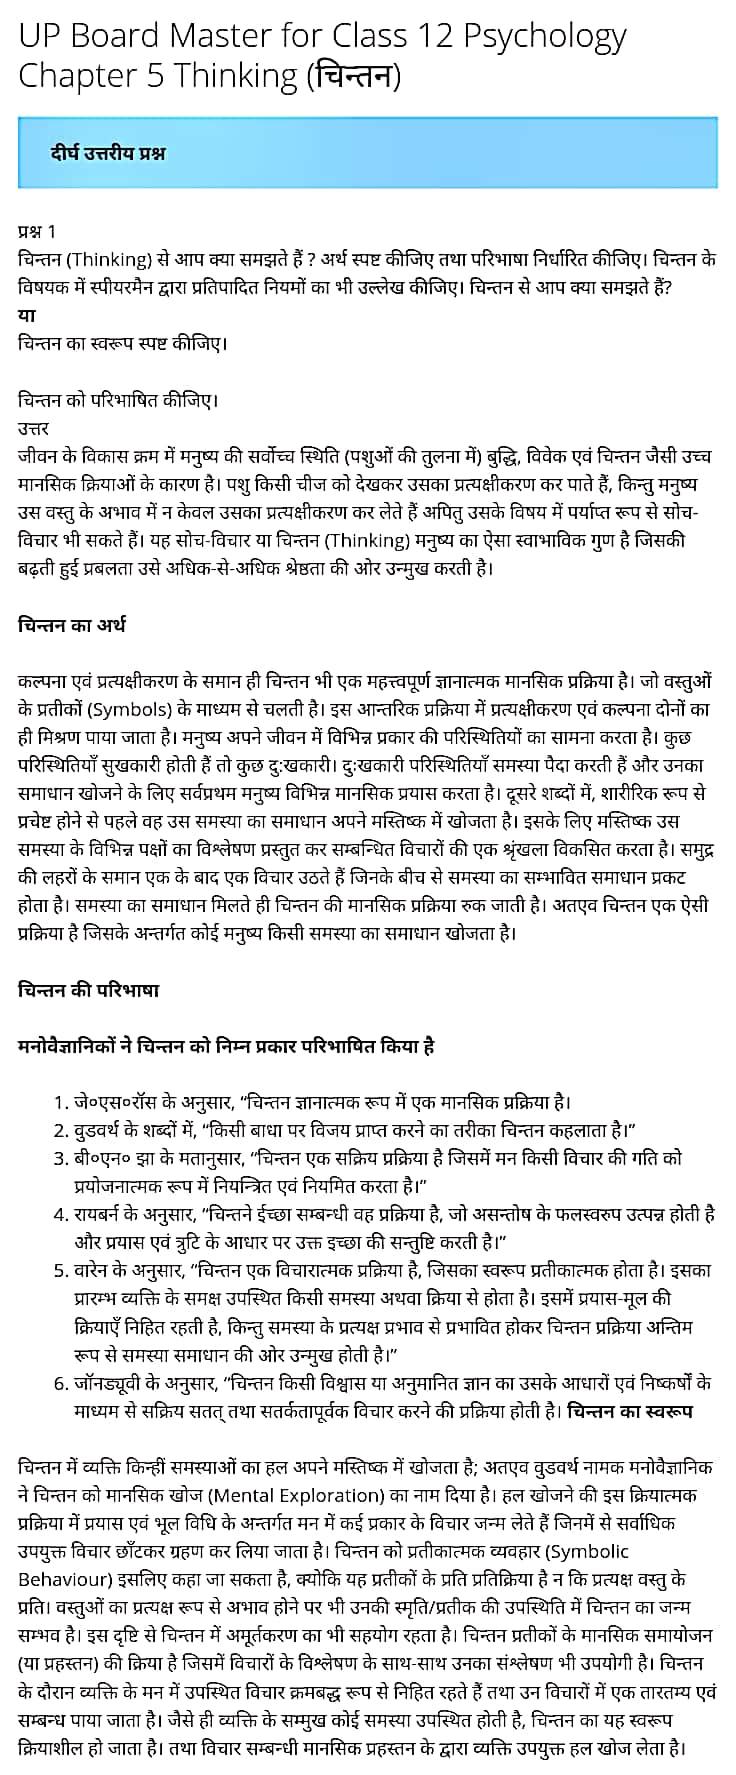 UP Board Solutions for Class 12 Psychology Chapter 5 Thinking (चिन्तन)